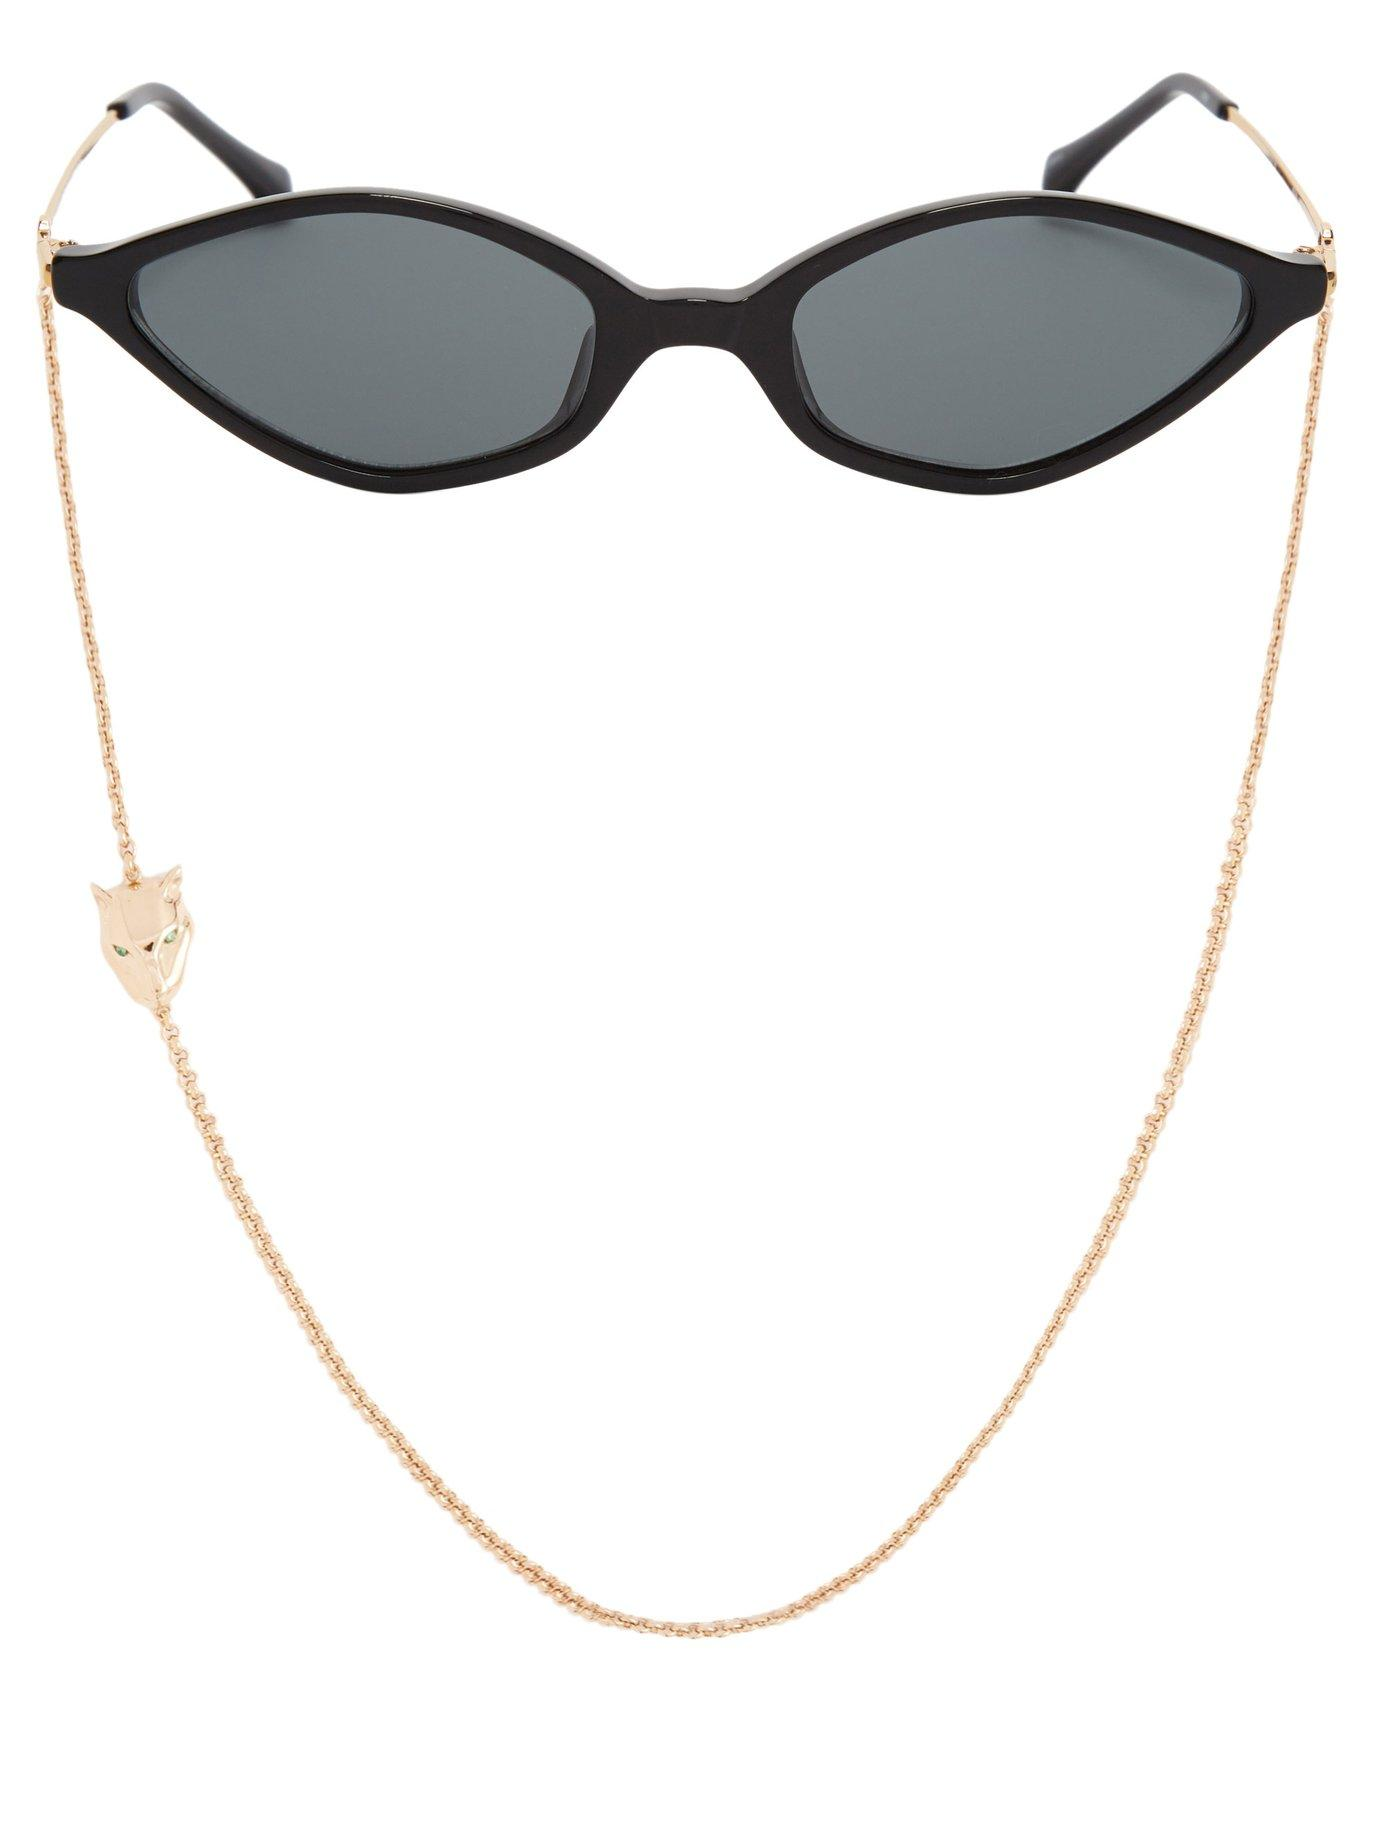 c2f84d58cc Lyst - Linda Farrow 3 C1 Slim Cat Eye Sunglasses in Black